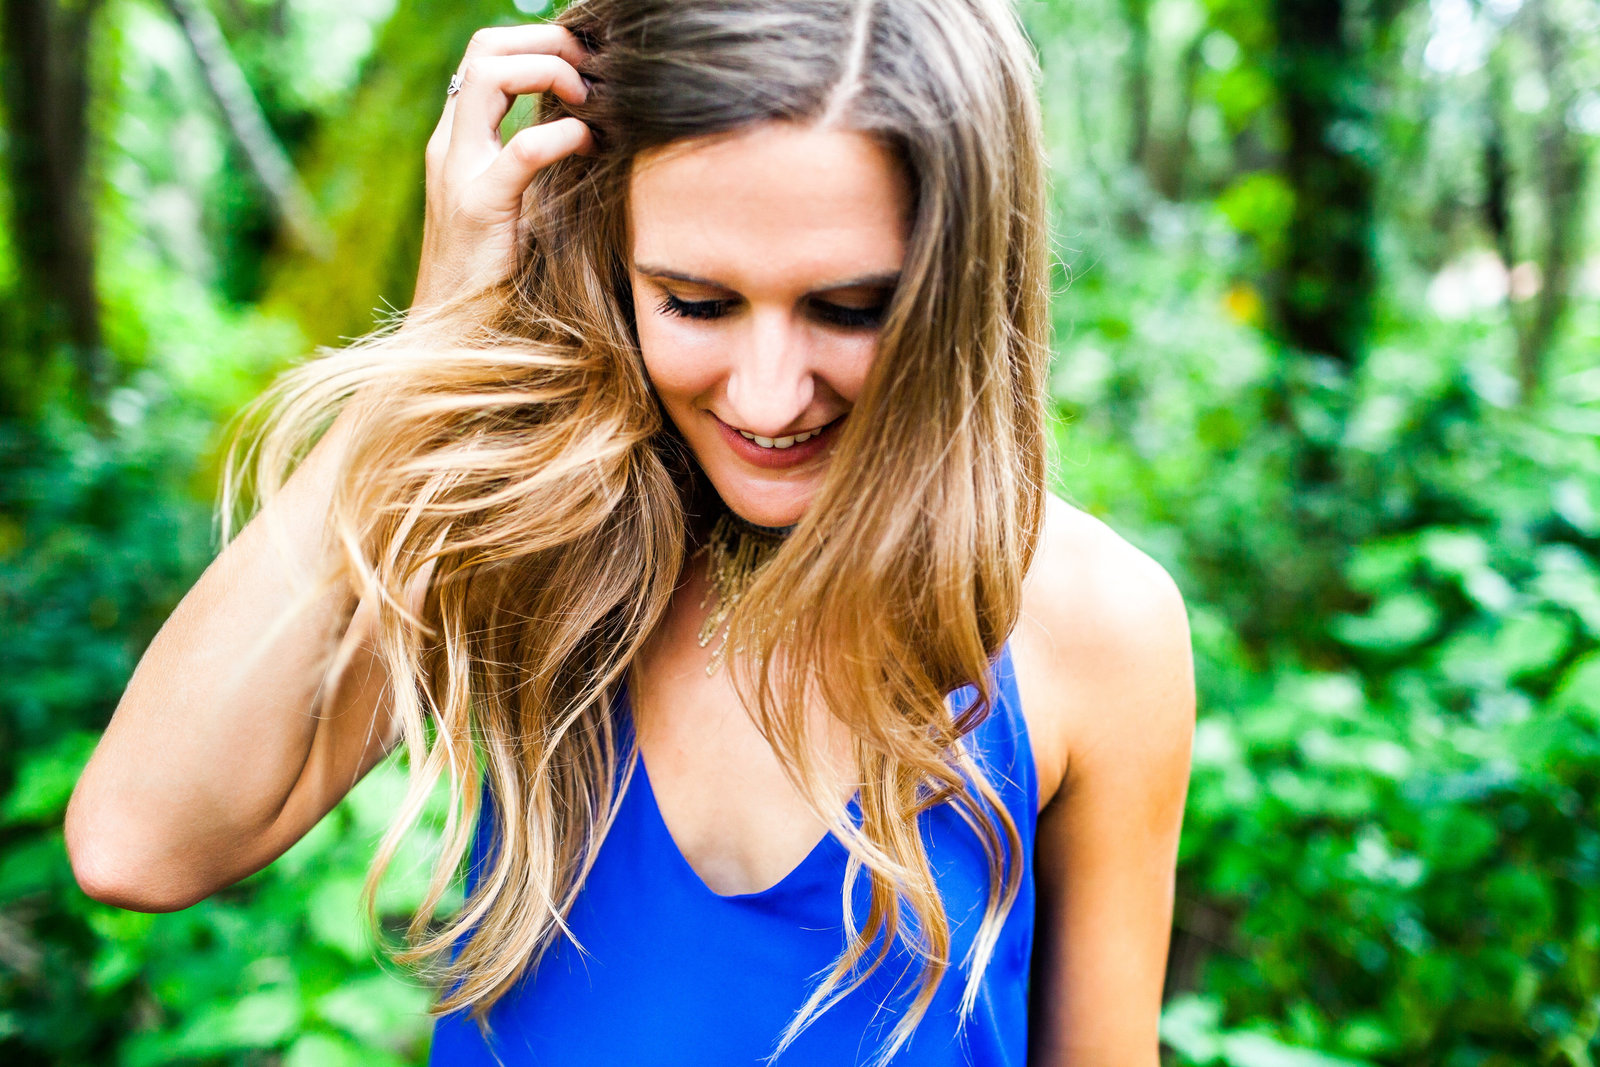 Hair blowing in the wind with lush greenery and blue dress